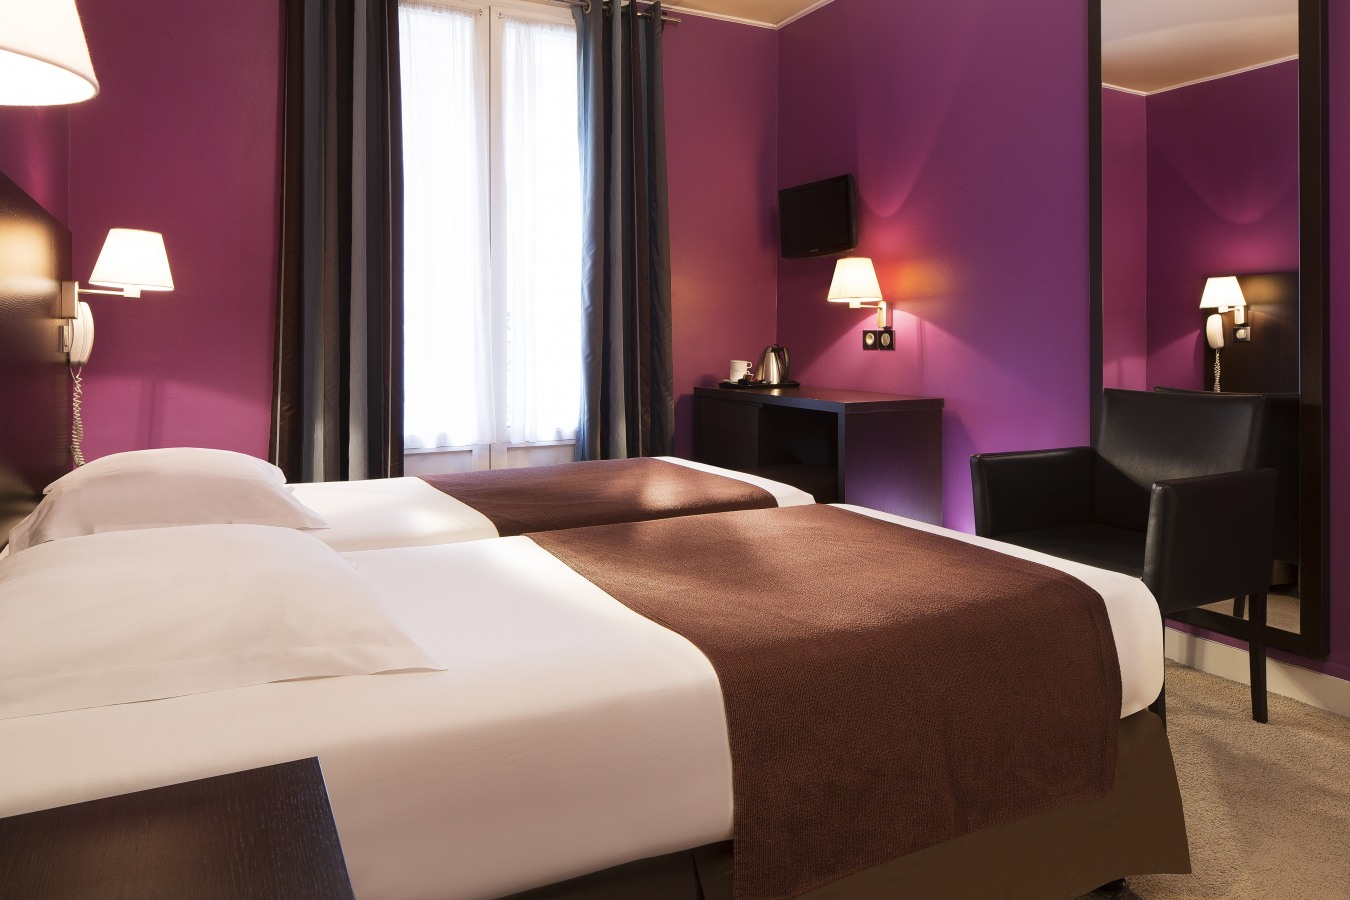 Hotel Sophie Germain - Exclusive Offers